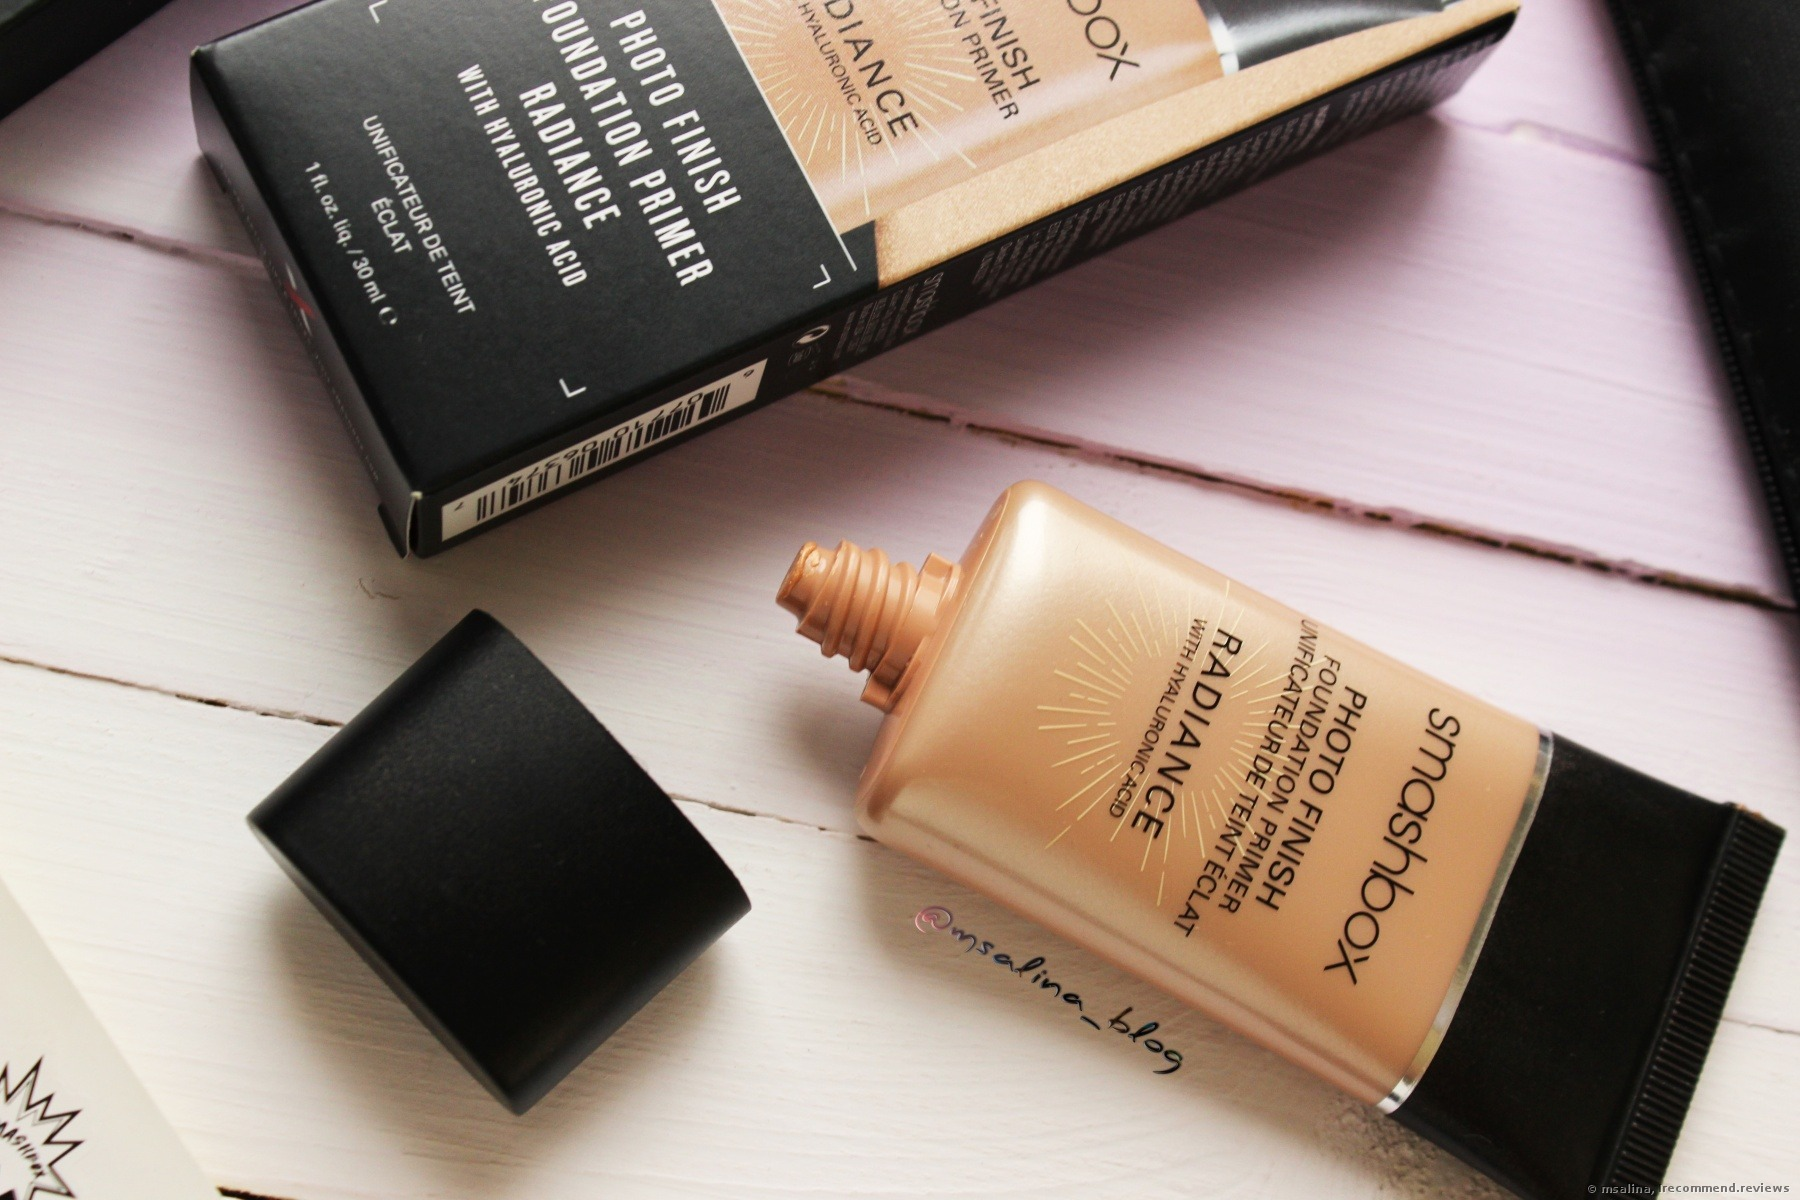 Smashbox Photo Finish Radiance Primer Long Lasting Smashbox Photo